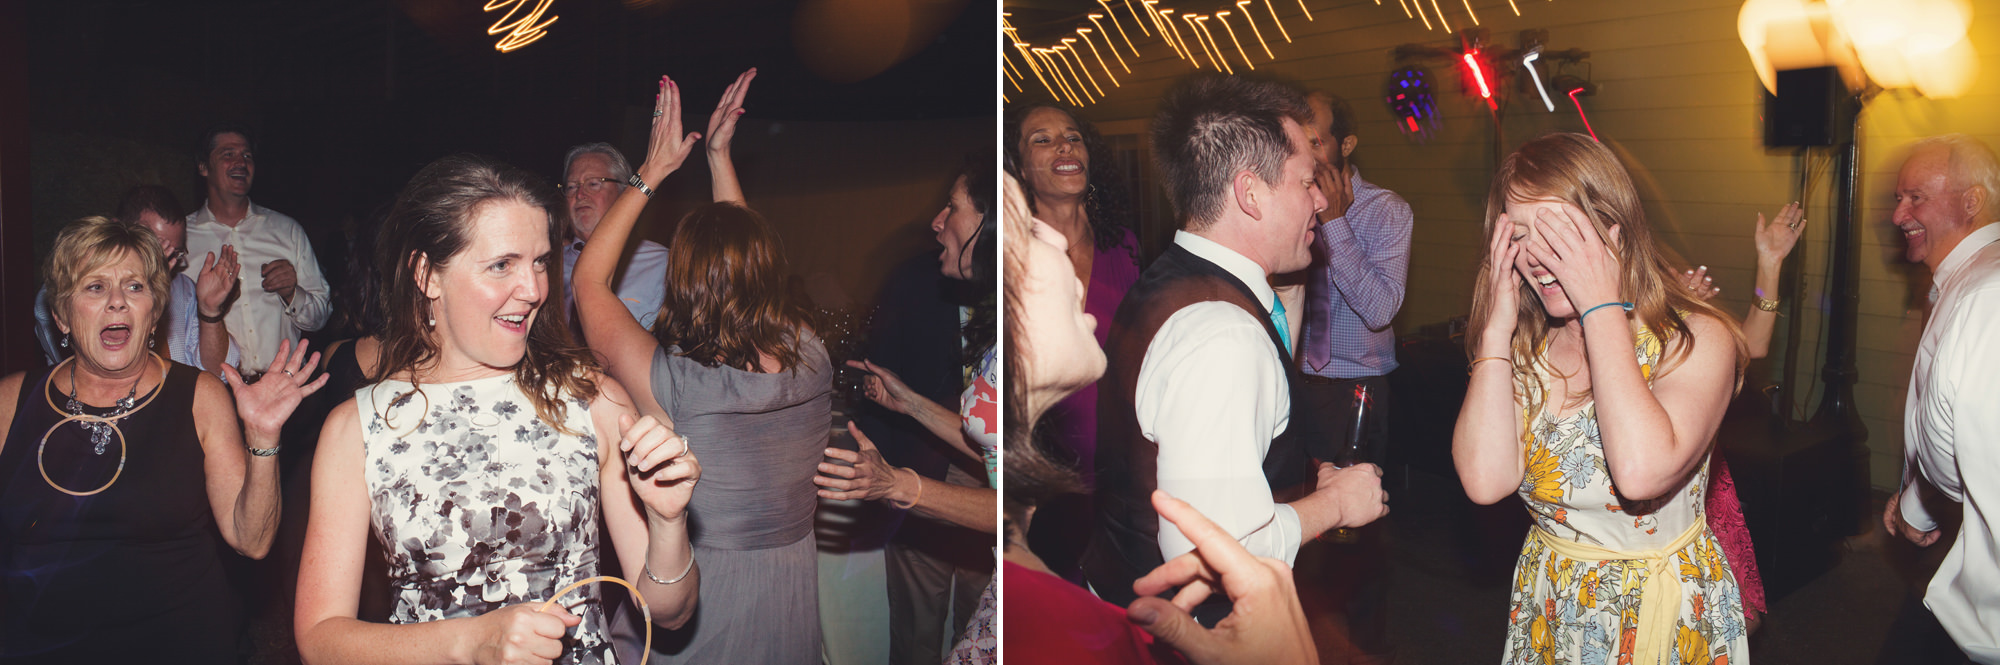 Toby's Feed Barn Wedding ©Anne-Claire Brun 163